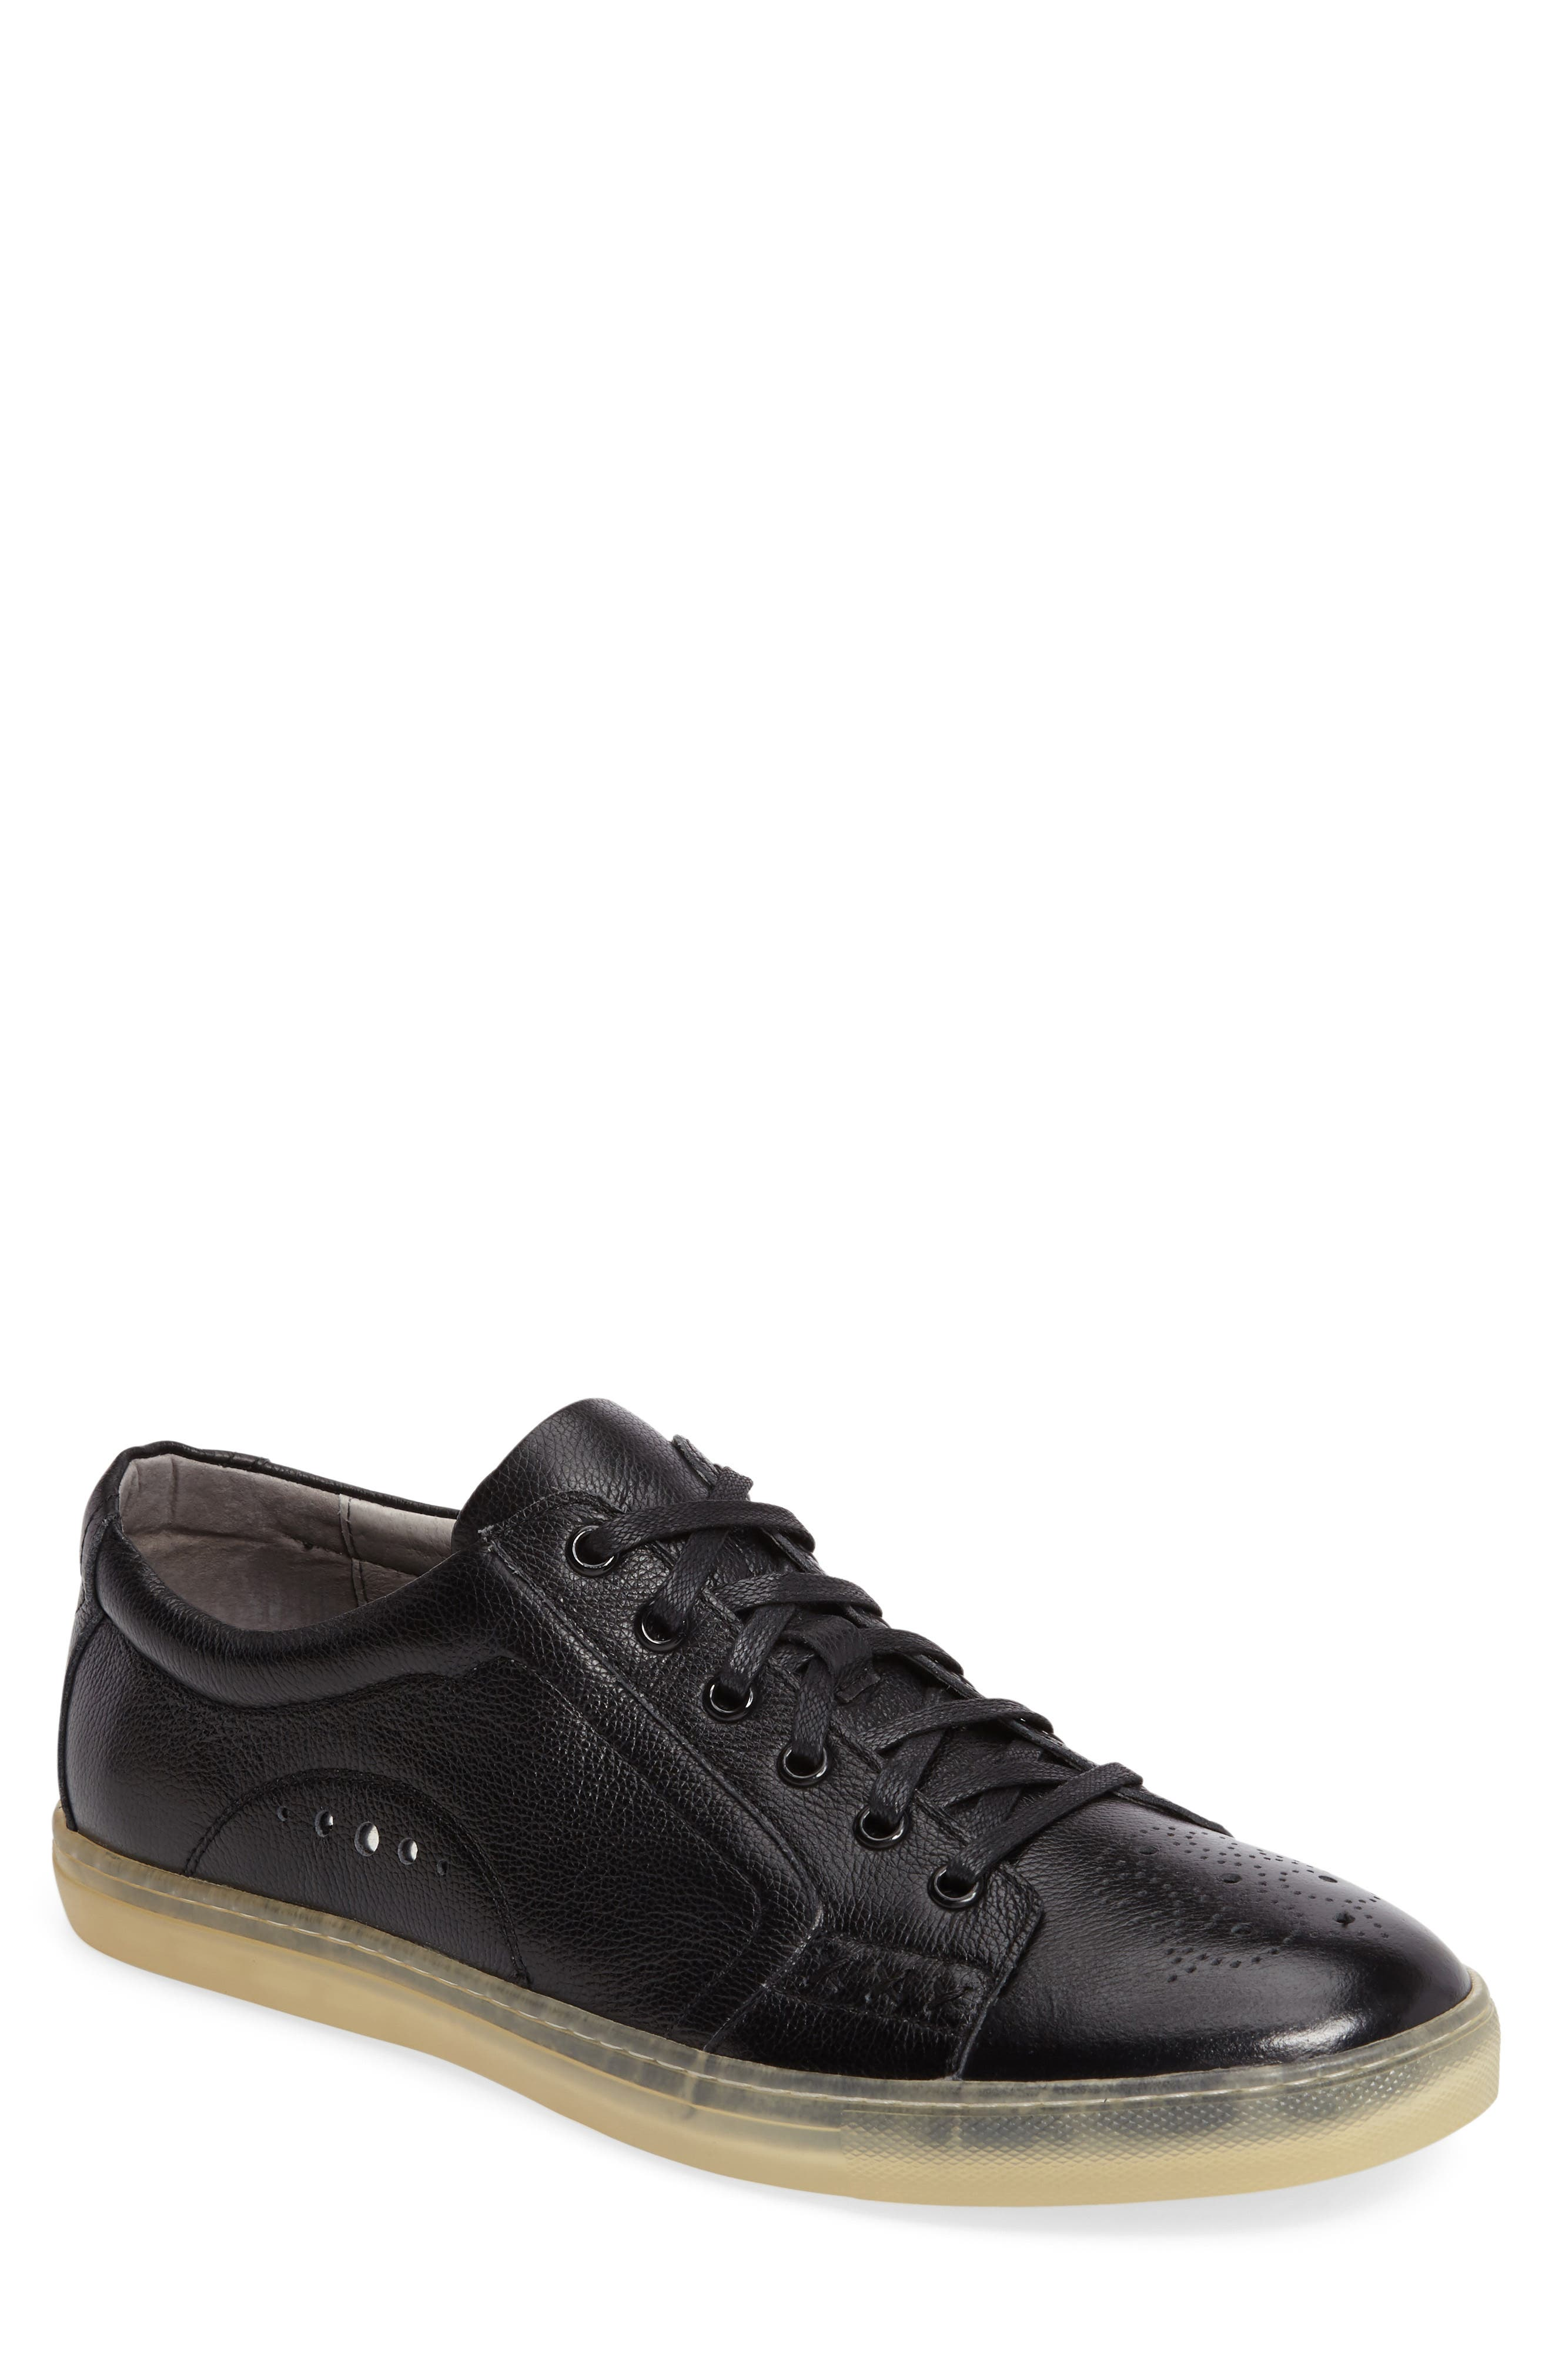 'Drum' Lace-Up Sneaker,                             Main thumbnail 3, color,